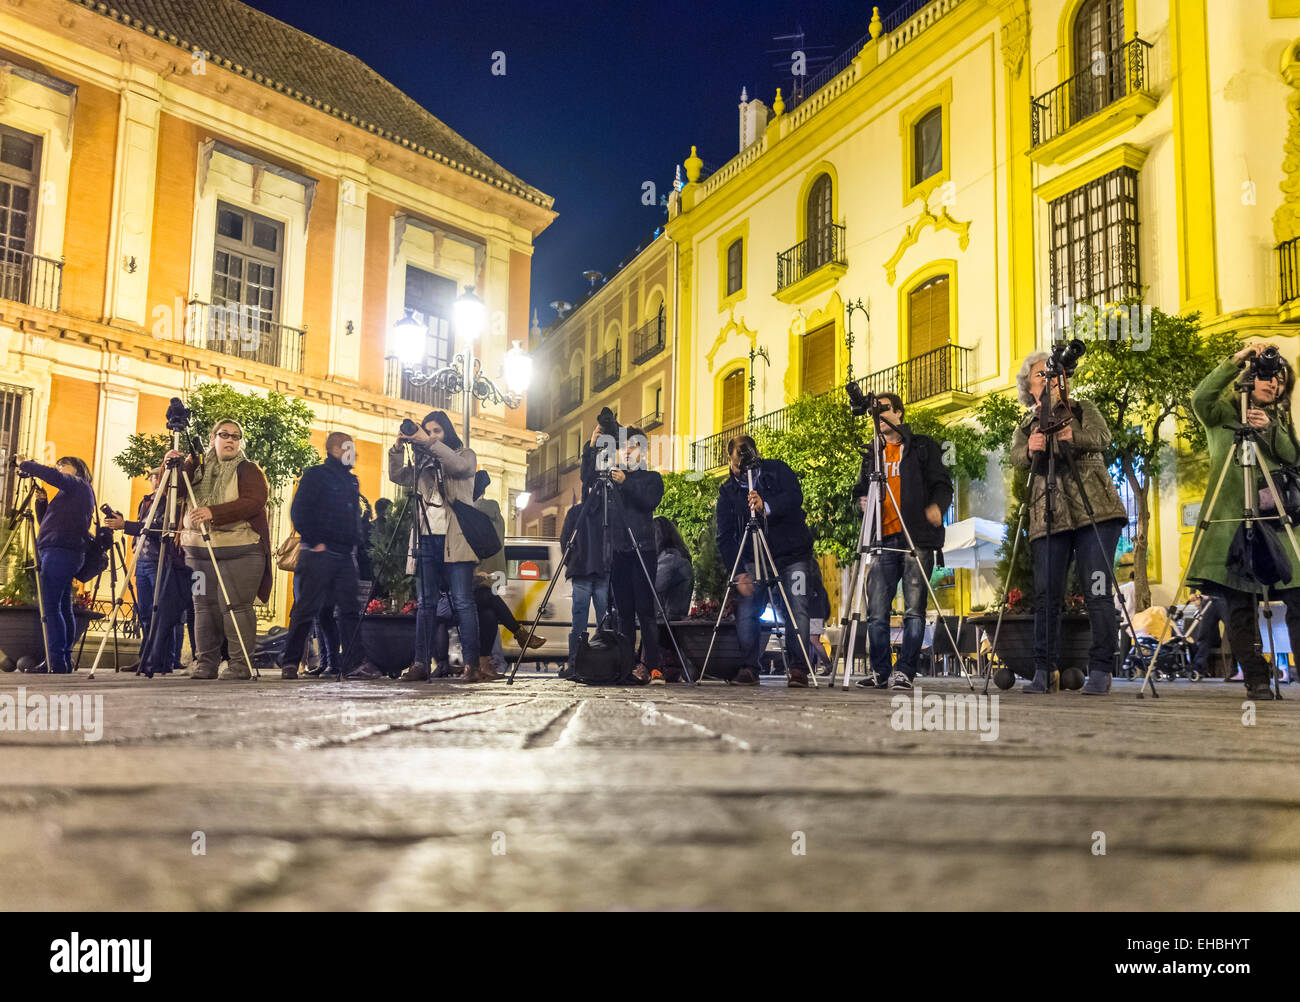 Seville Spain, group of photographers with tripods at night on guided photo tour aiming at the Giralda Cathedral - Stock Image